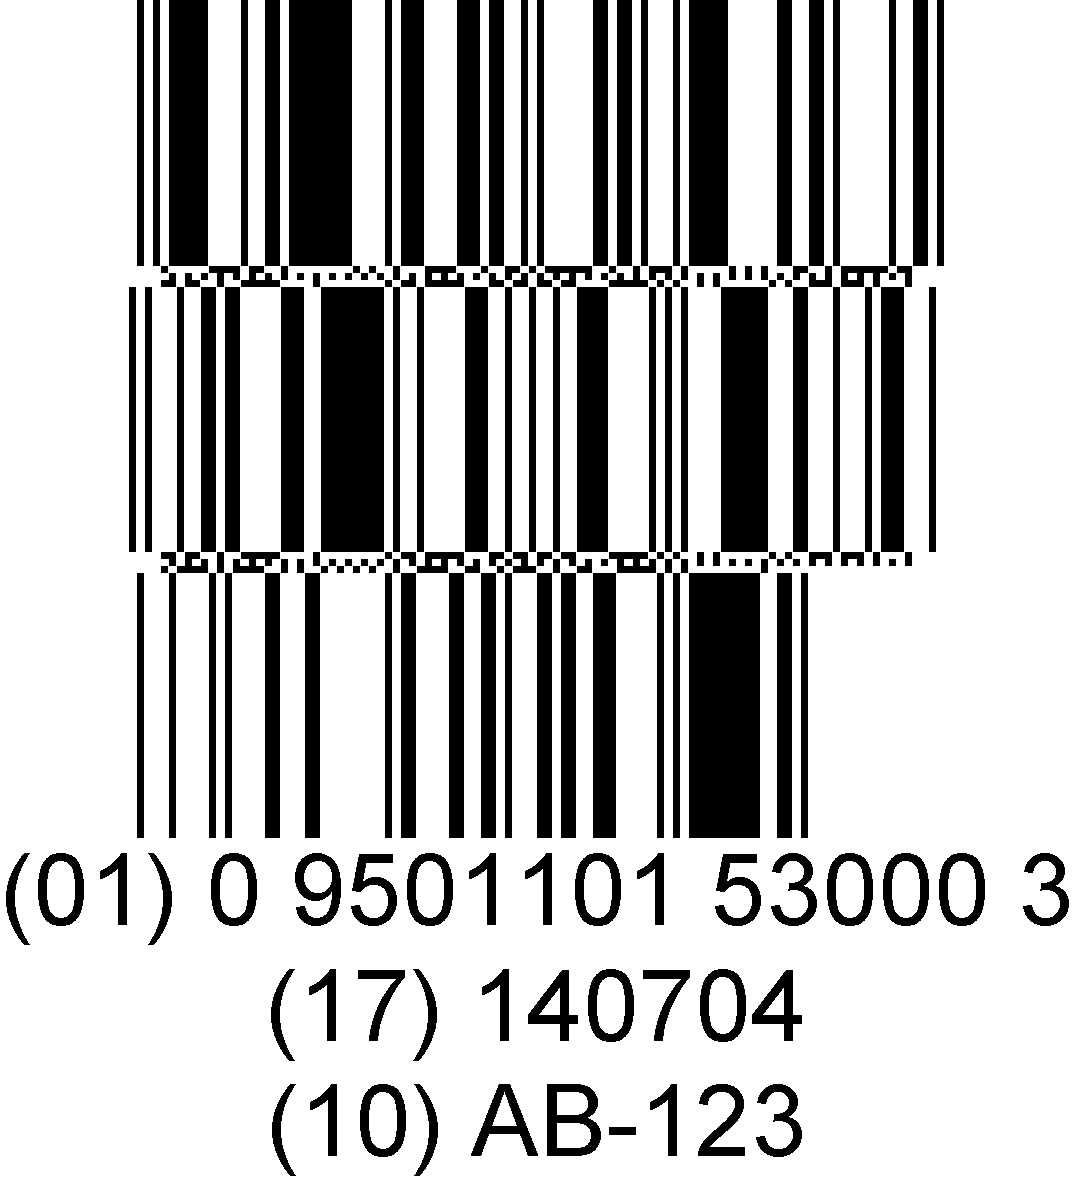 DataBar Expanded Stacked barcode